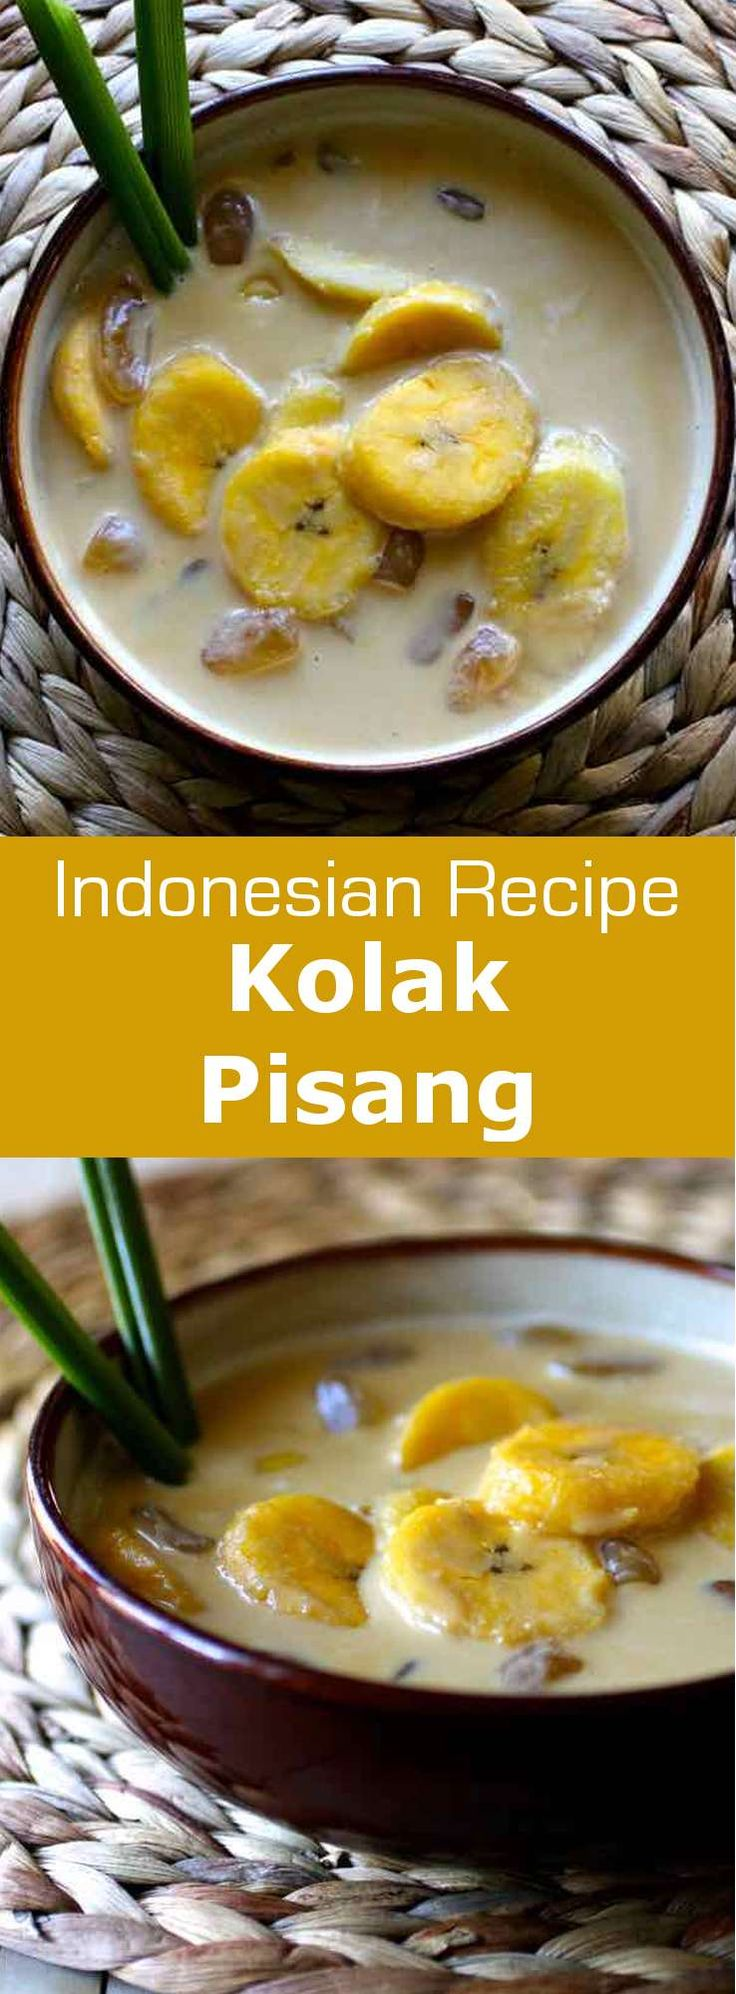 Kolak is an Indonesian dessert made with palm sugar, coconut milk and pandanus leaf. When banana is added, it is called kolak pisang. #Indonesia #IndonesianCuisine #IndonesianFood #AsianCuisine #196flavors